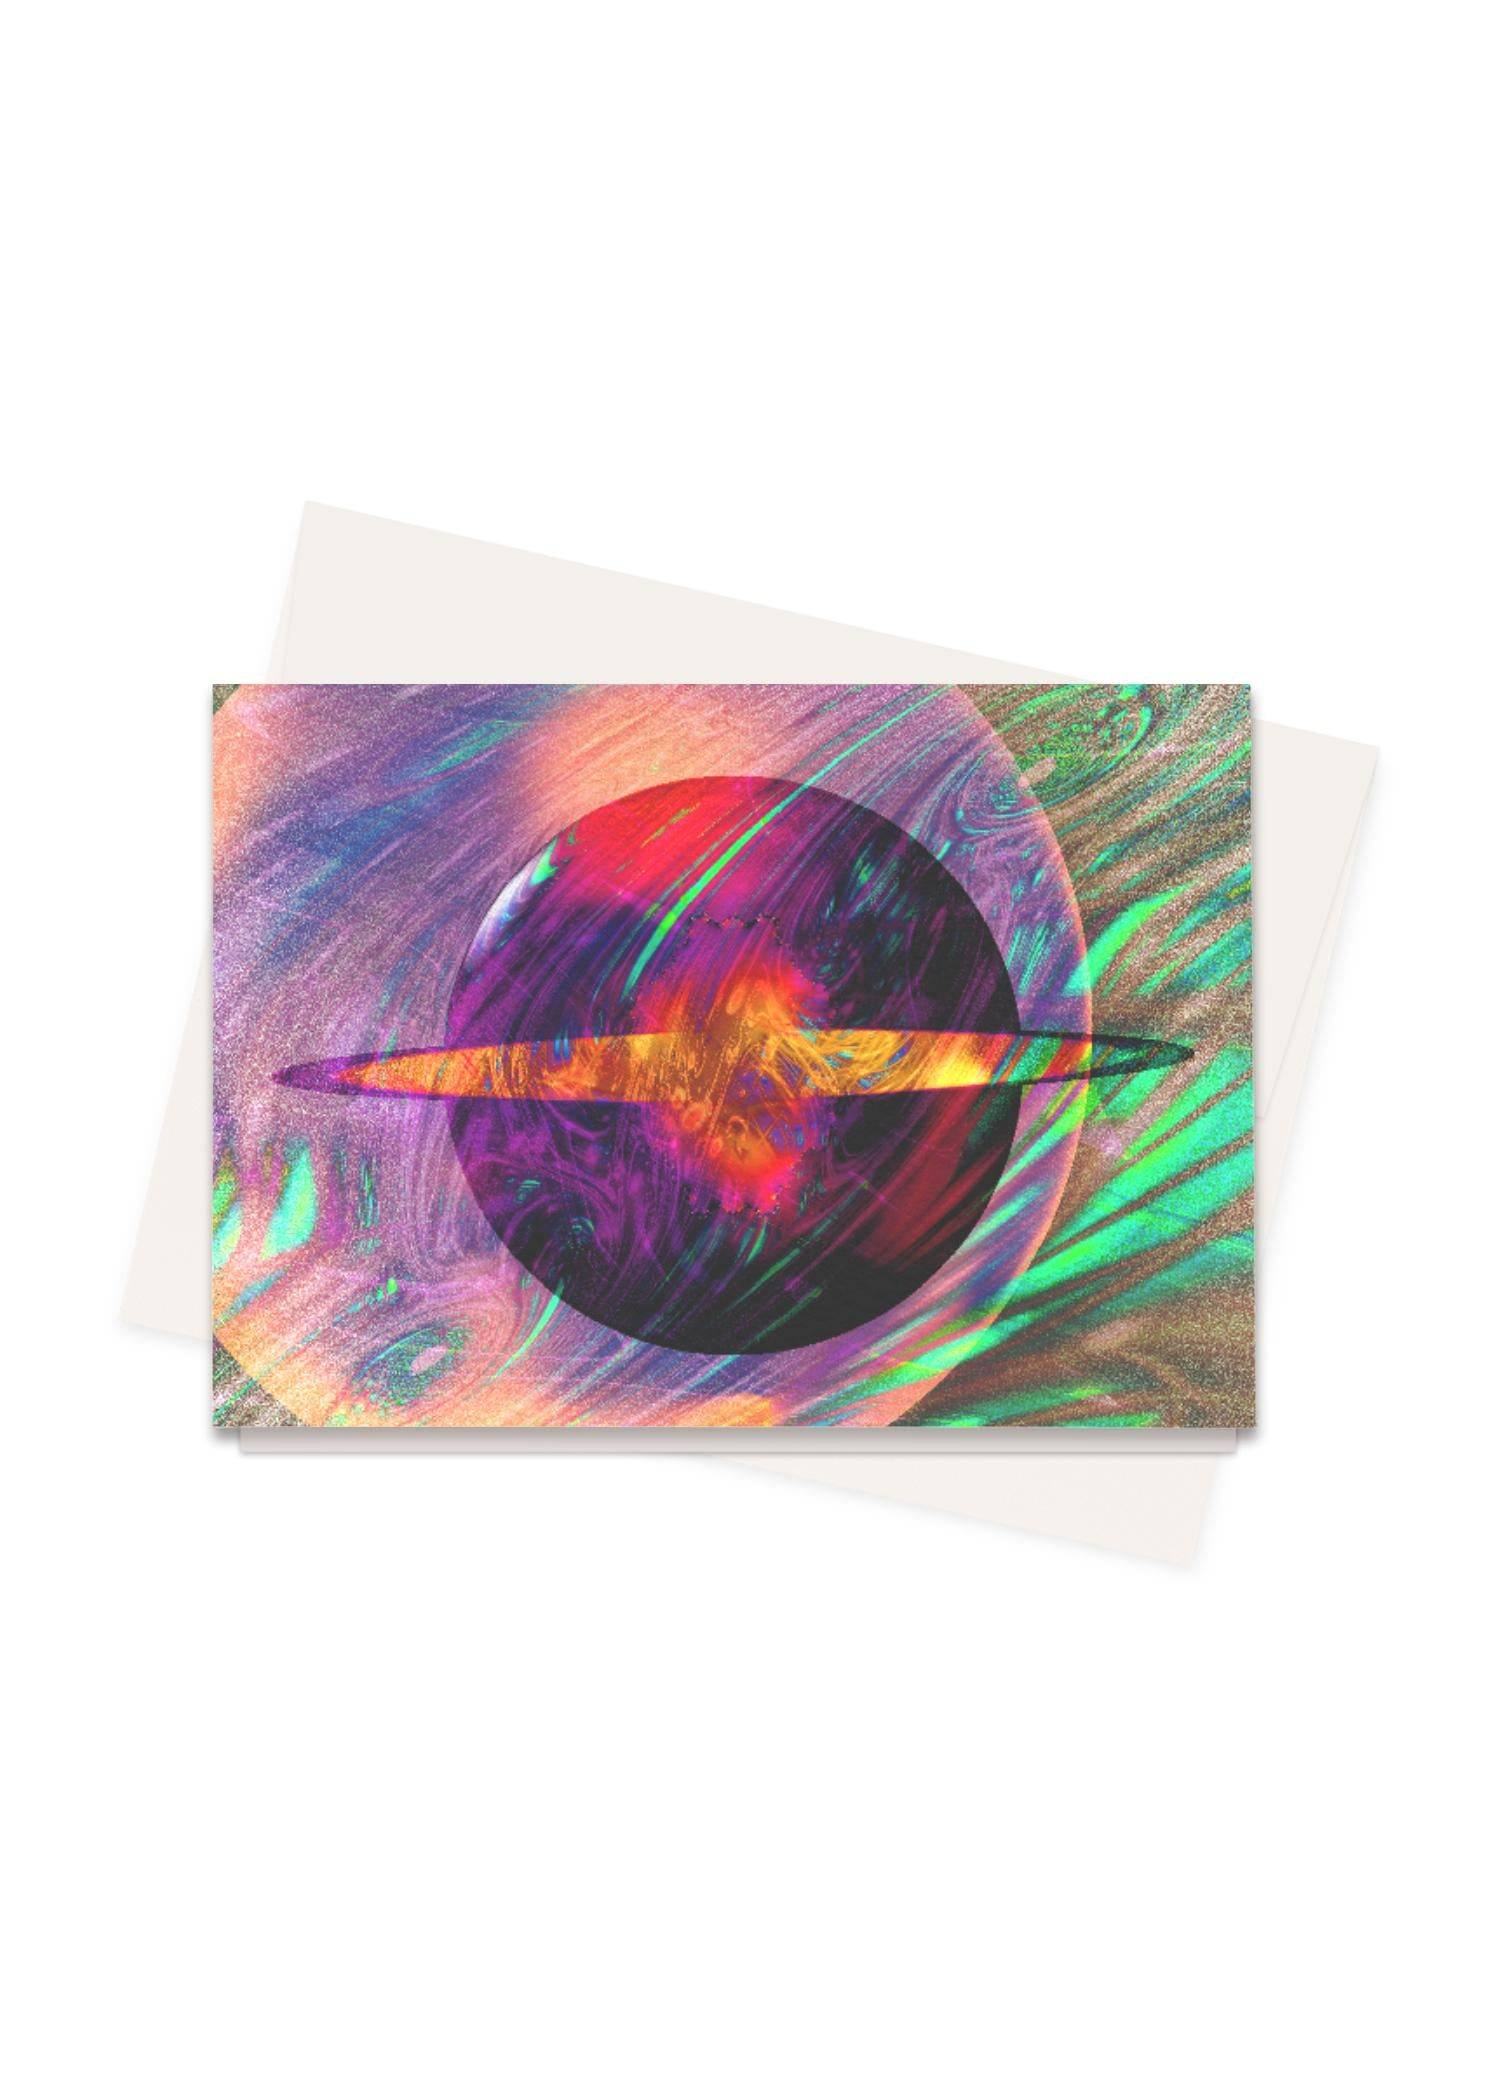 PRIDE Greeting Cards Set - Galaxy 11:11 #Pillows by PRIDE Original Artist  - Size: Set of 16